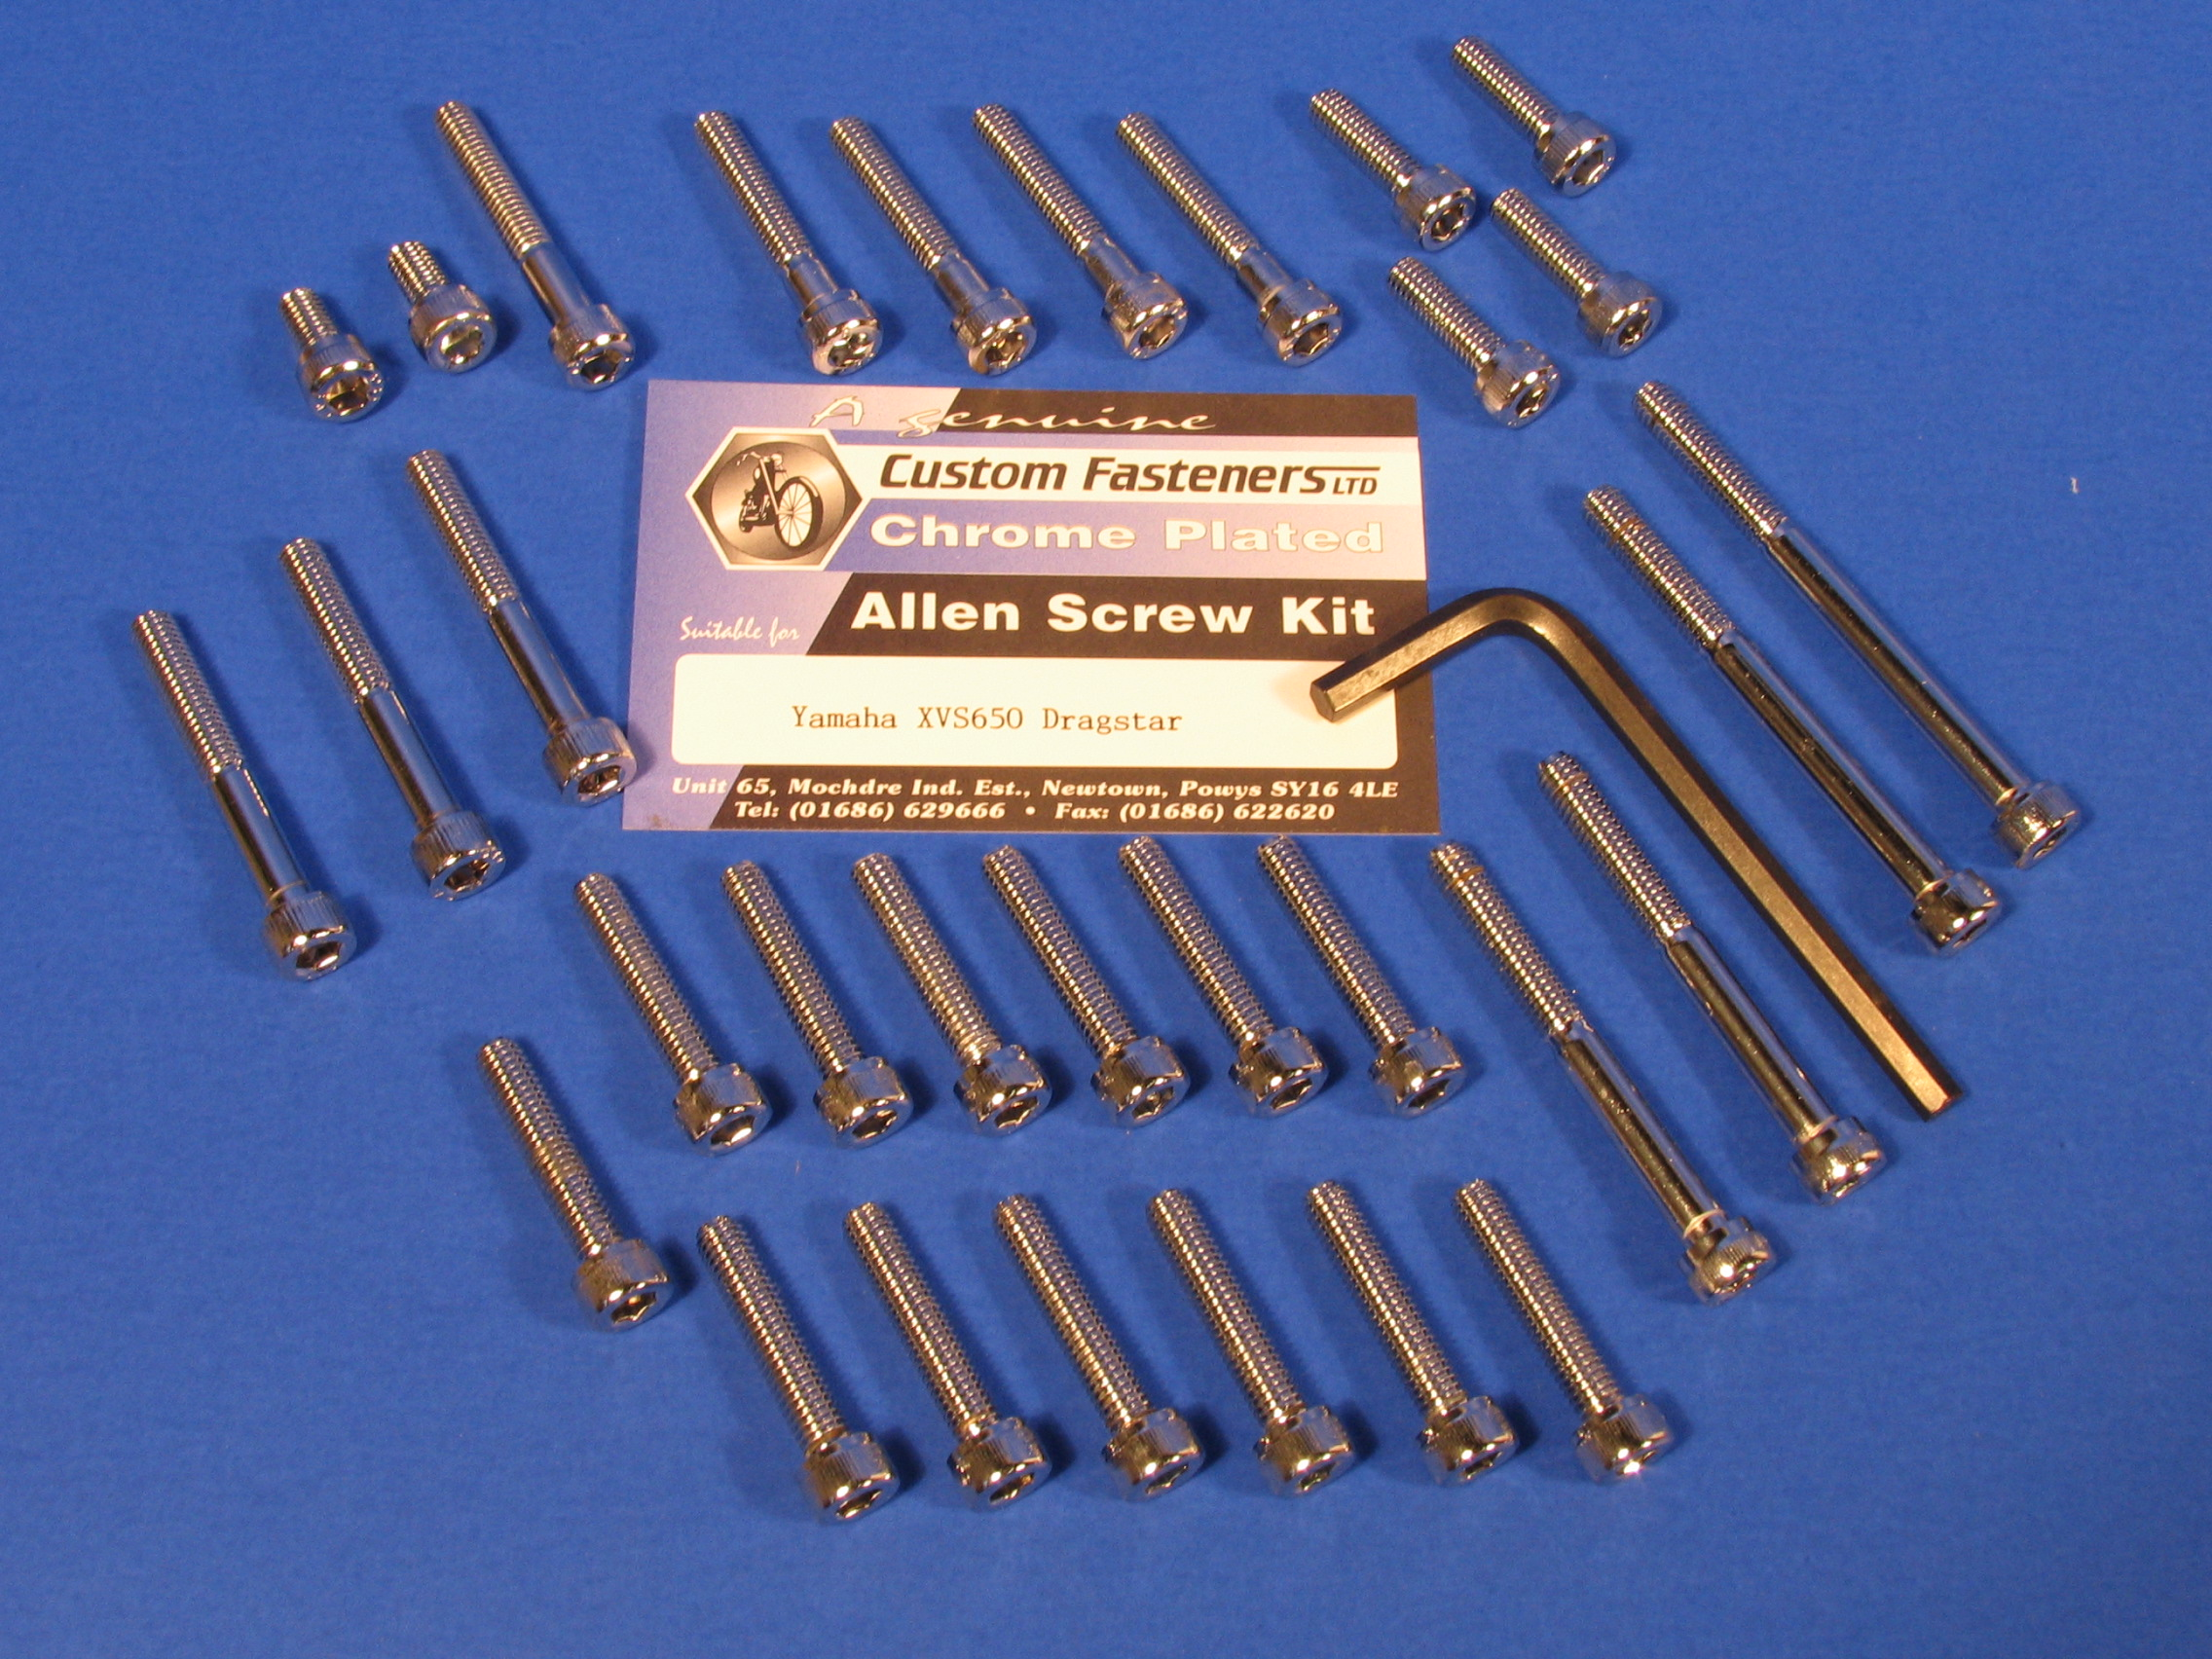 Triumph Allen Screw Kits